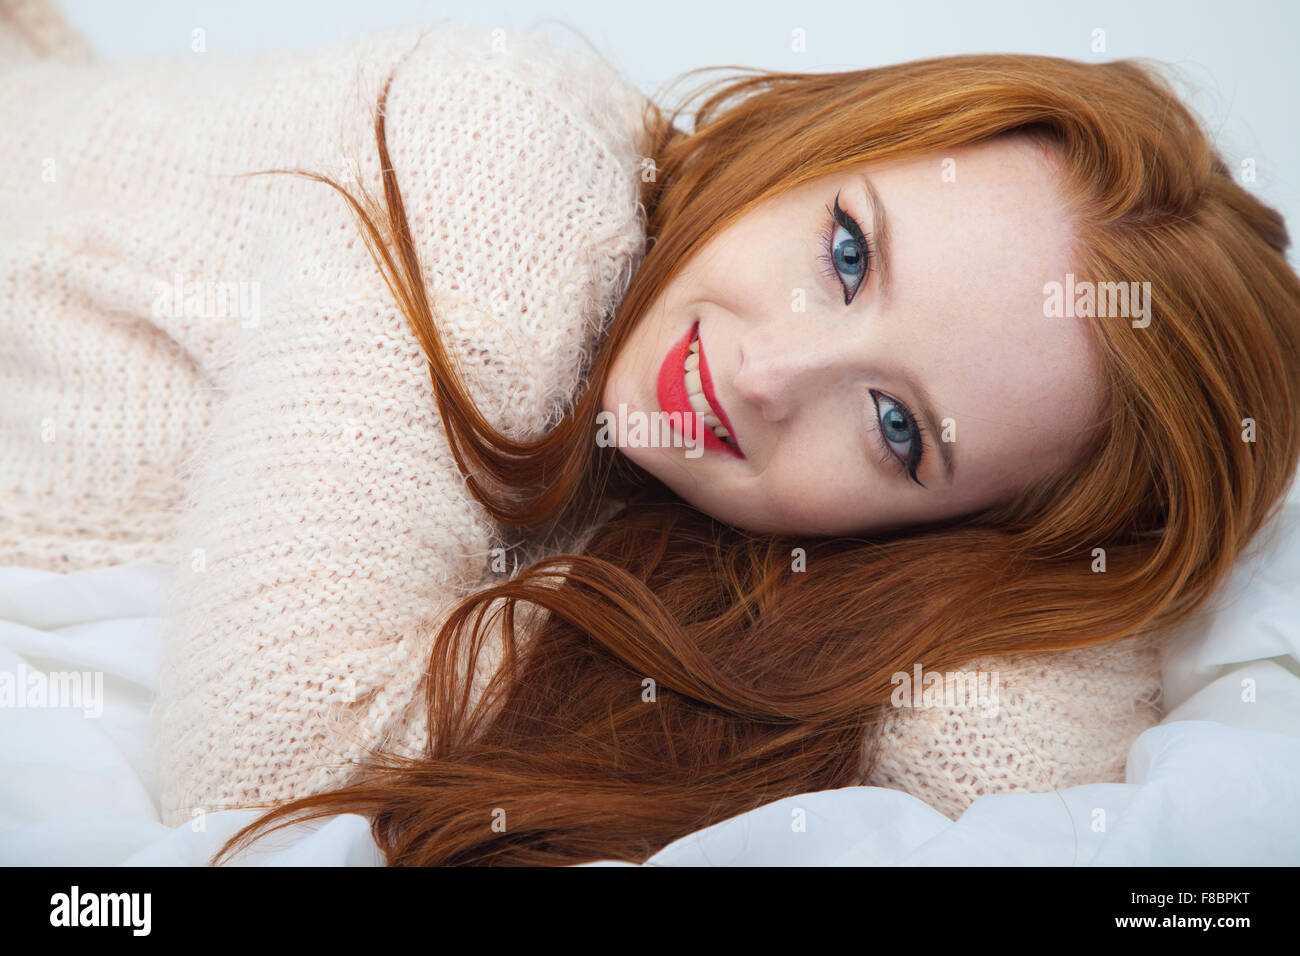 A pretty redheaded woman lying down on white fabric. - Stock Image